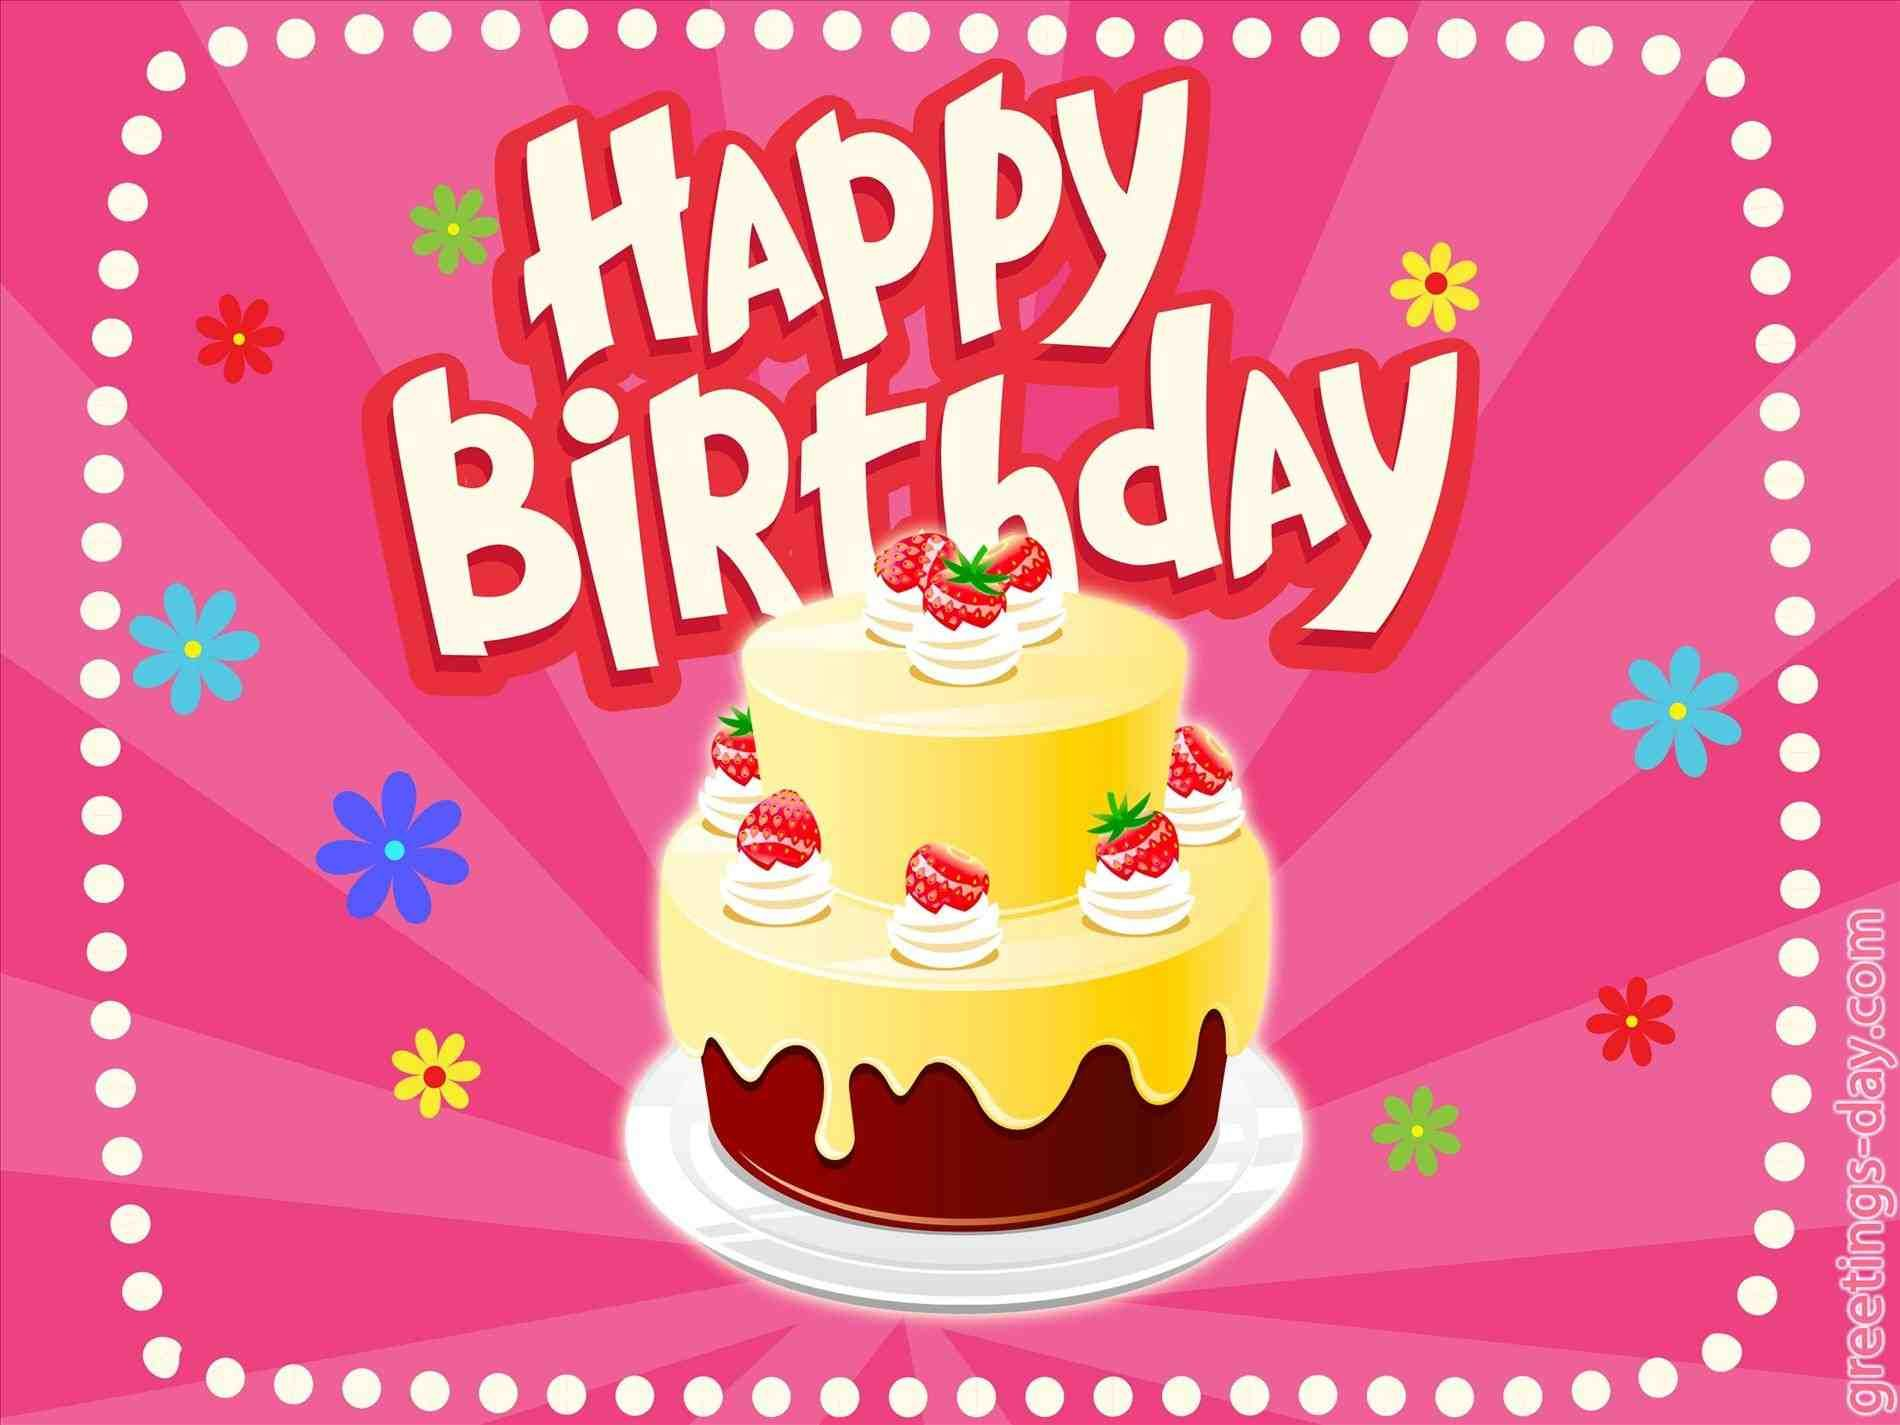 Happy Birthday Animated Card With Images Happy Birthday Video